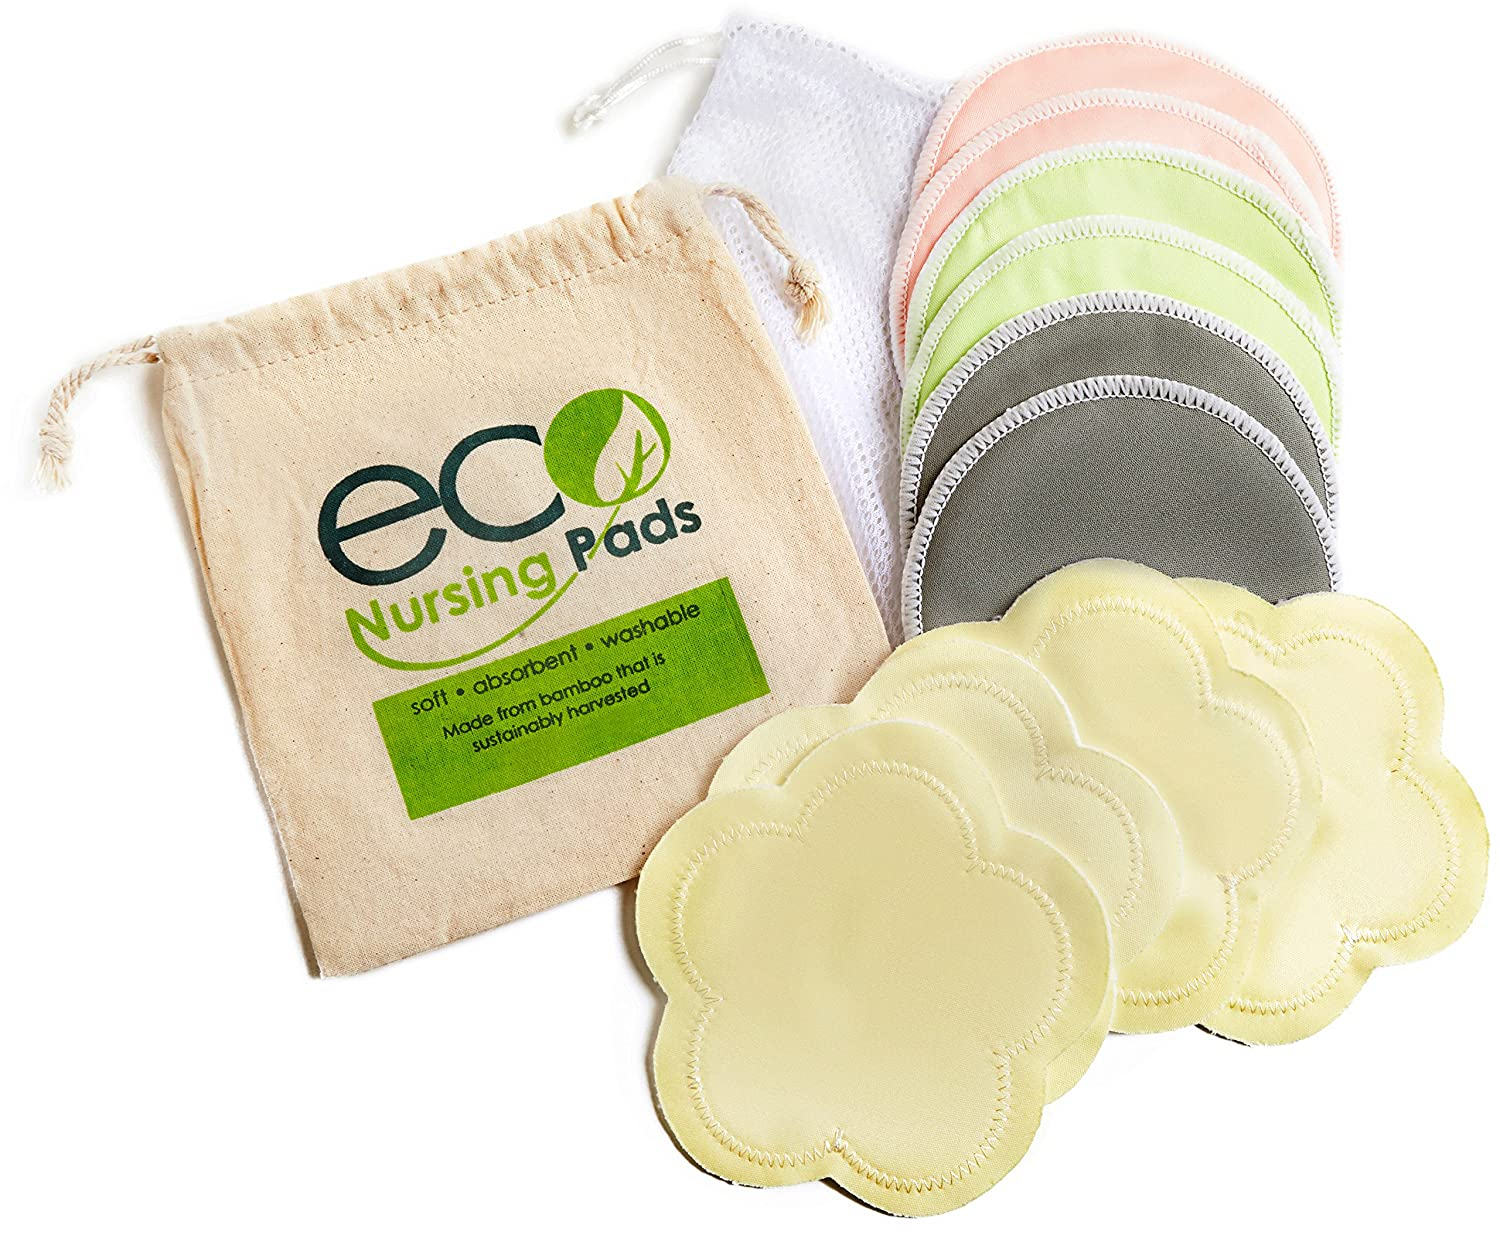 B_losnіzhka breast pads - with care for the nursing mother